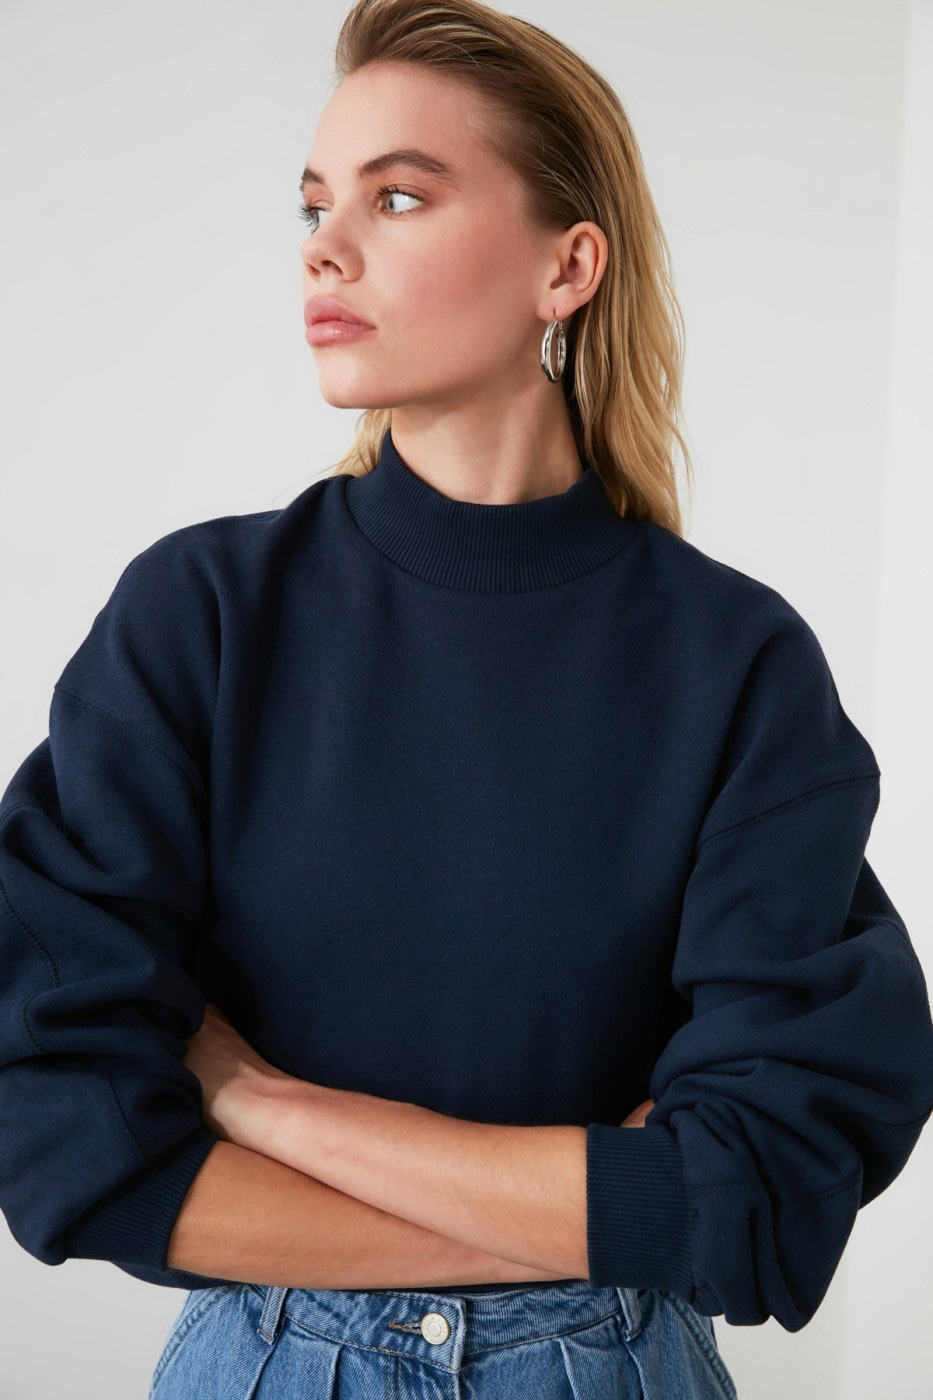 Trendyol Navy Upright Collar Knitted Sweatshirt